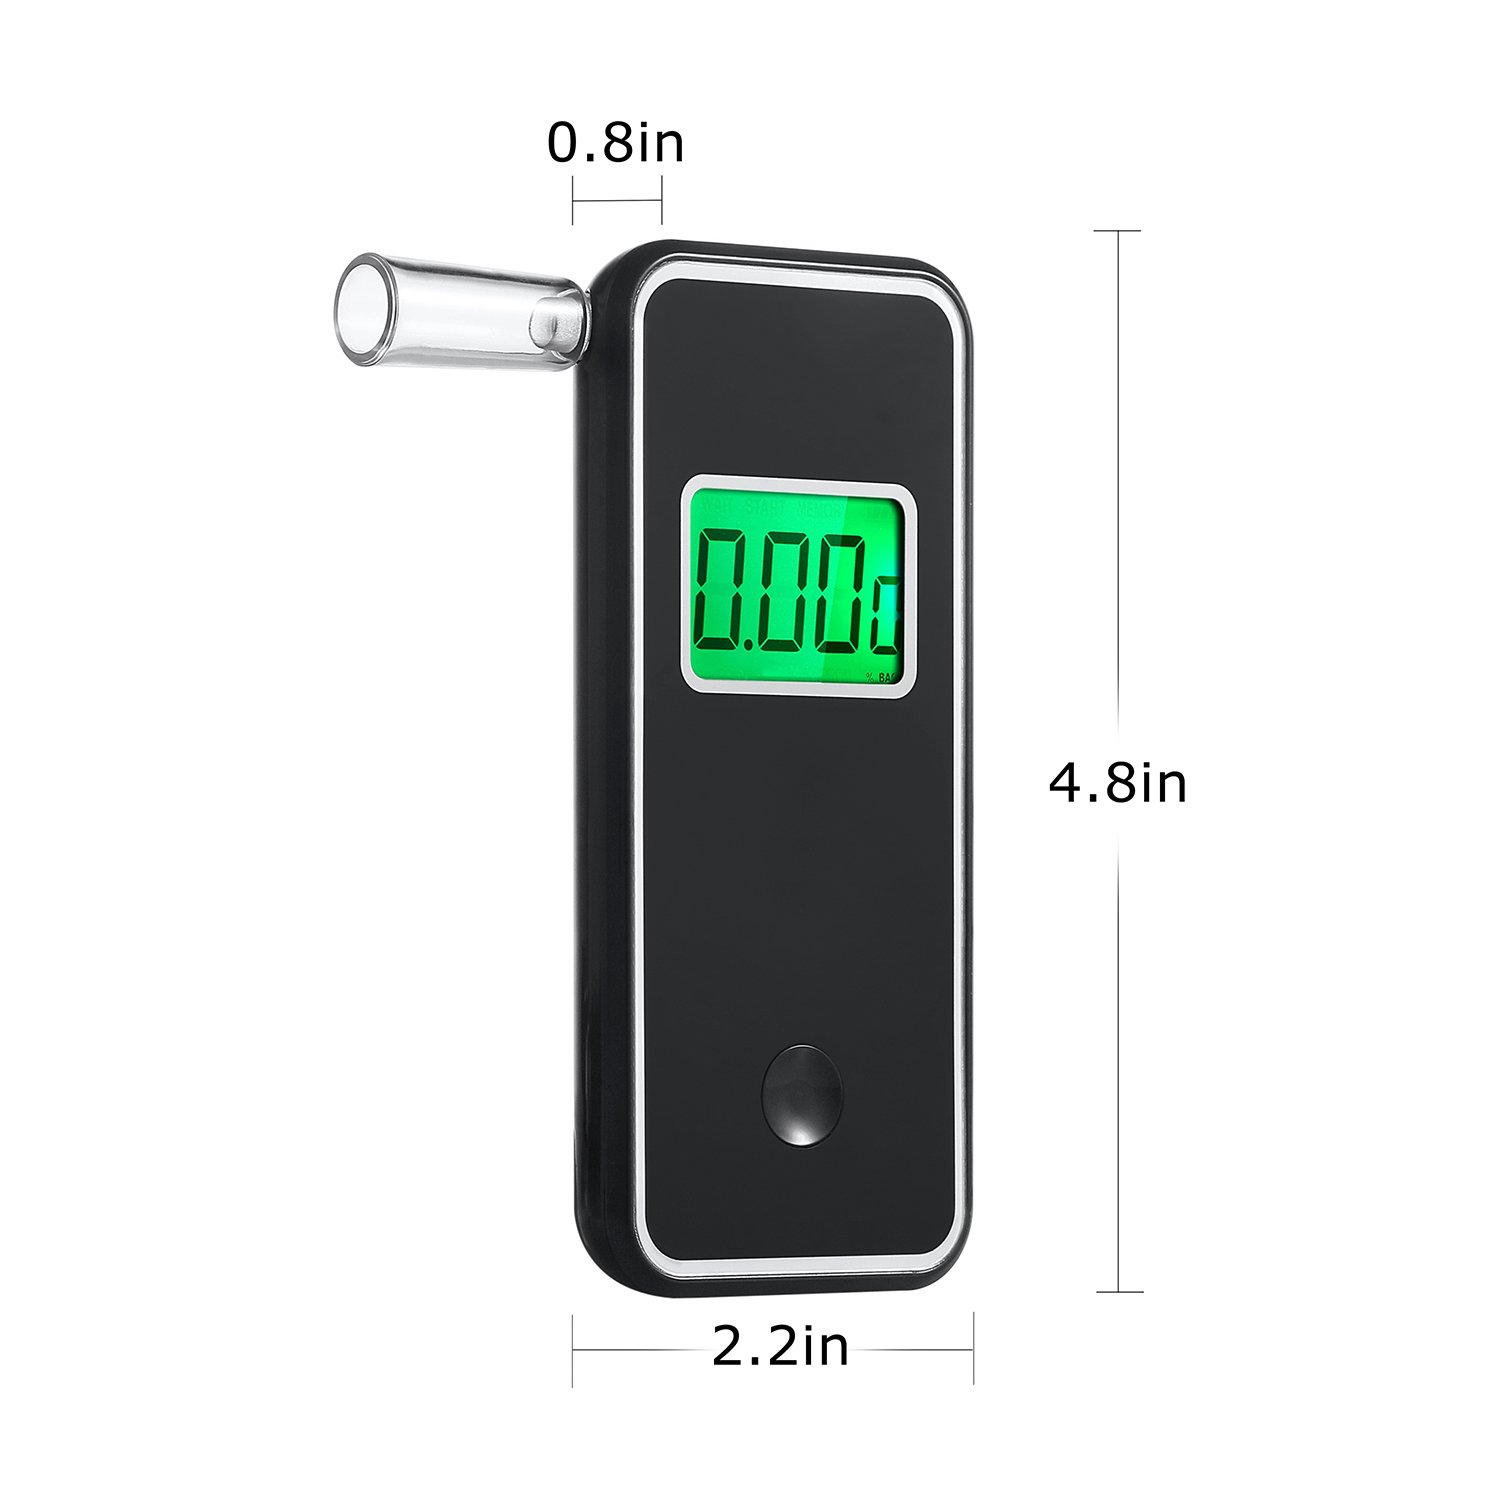 Breathalyzer Anntoo Professional Grade Portable Digital Alcohol Tester with 5 Mouthpieces for Personal Use - Gray by Anntoo (Image #6)